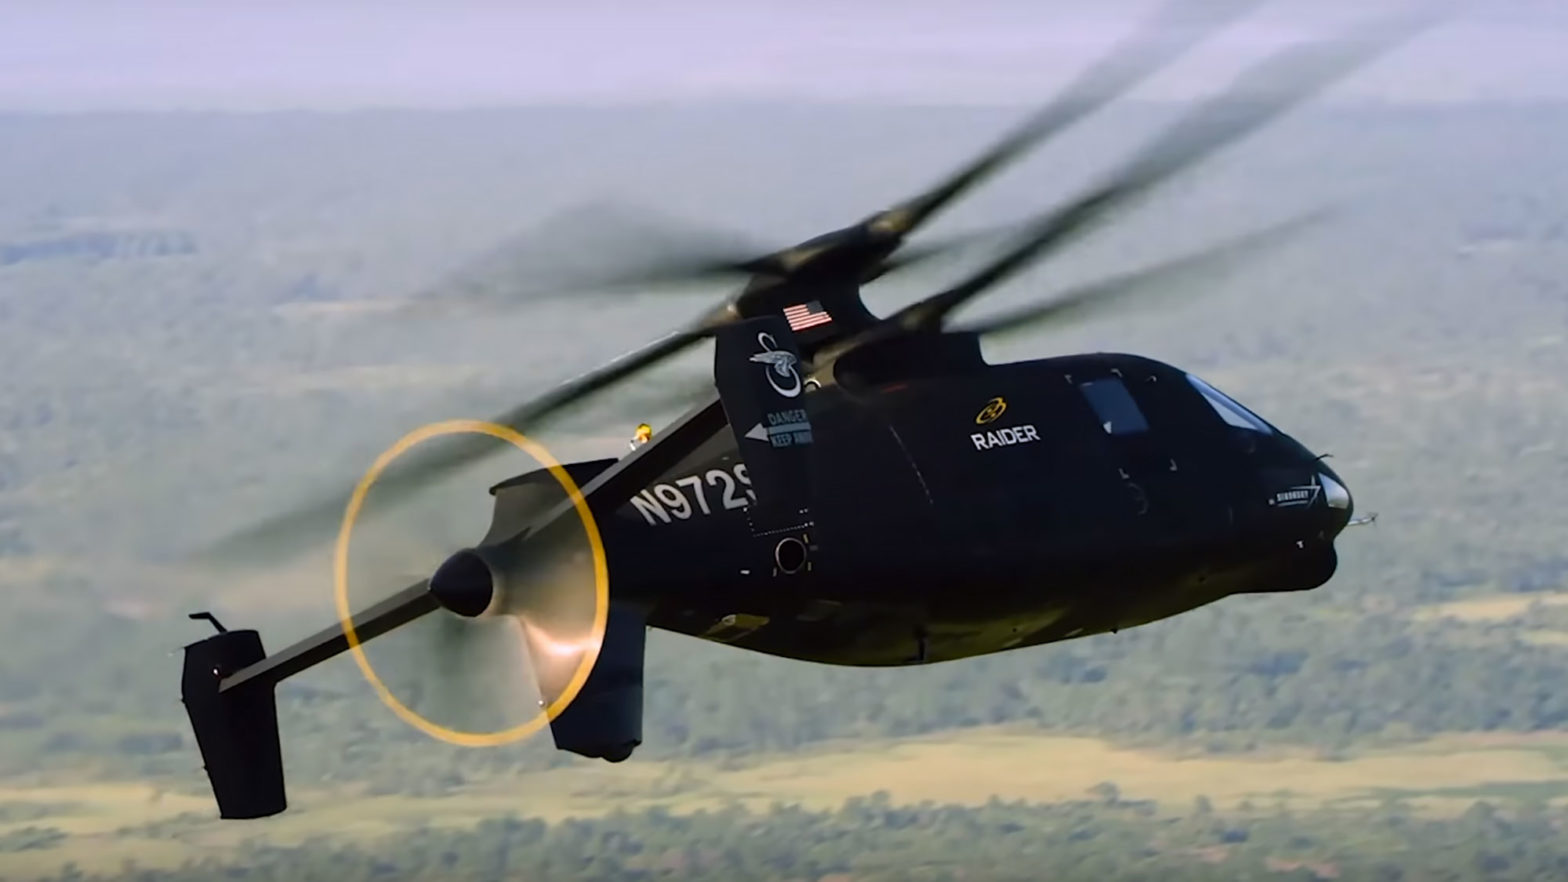 Sikorsky RAIDER X Coaxial Helicopter